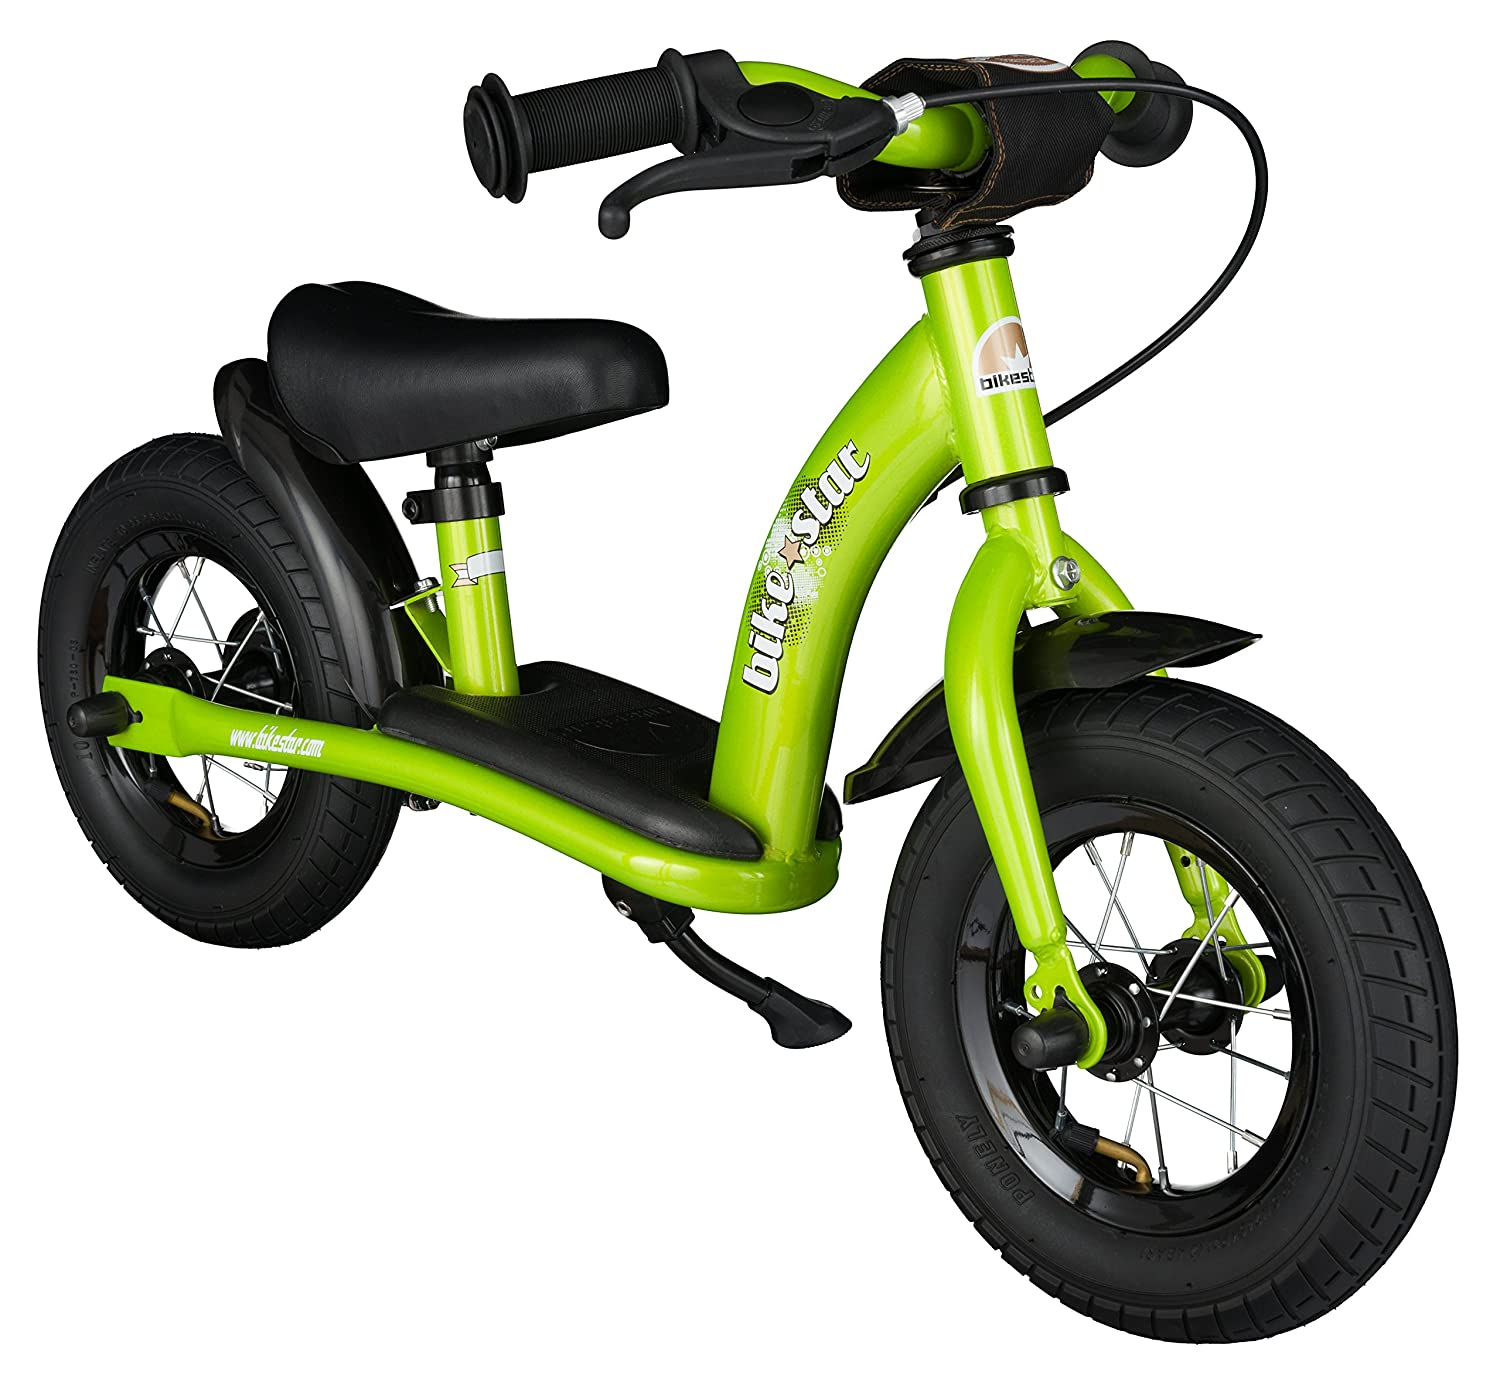 BIKESTAR Original Safety Lightweight Kids First Balance Running Bike with brakes and with air tires for age 2 year old boys and girls | 10 Inch Classic Edition | Brilliant Green Star-Trademarks